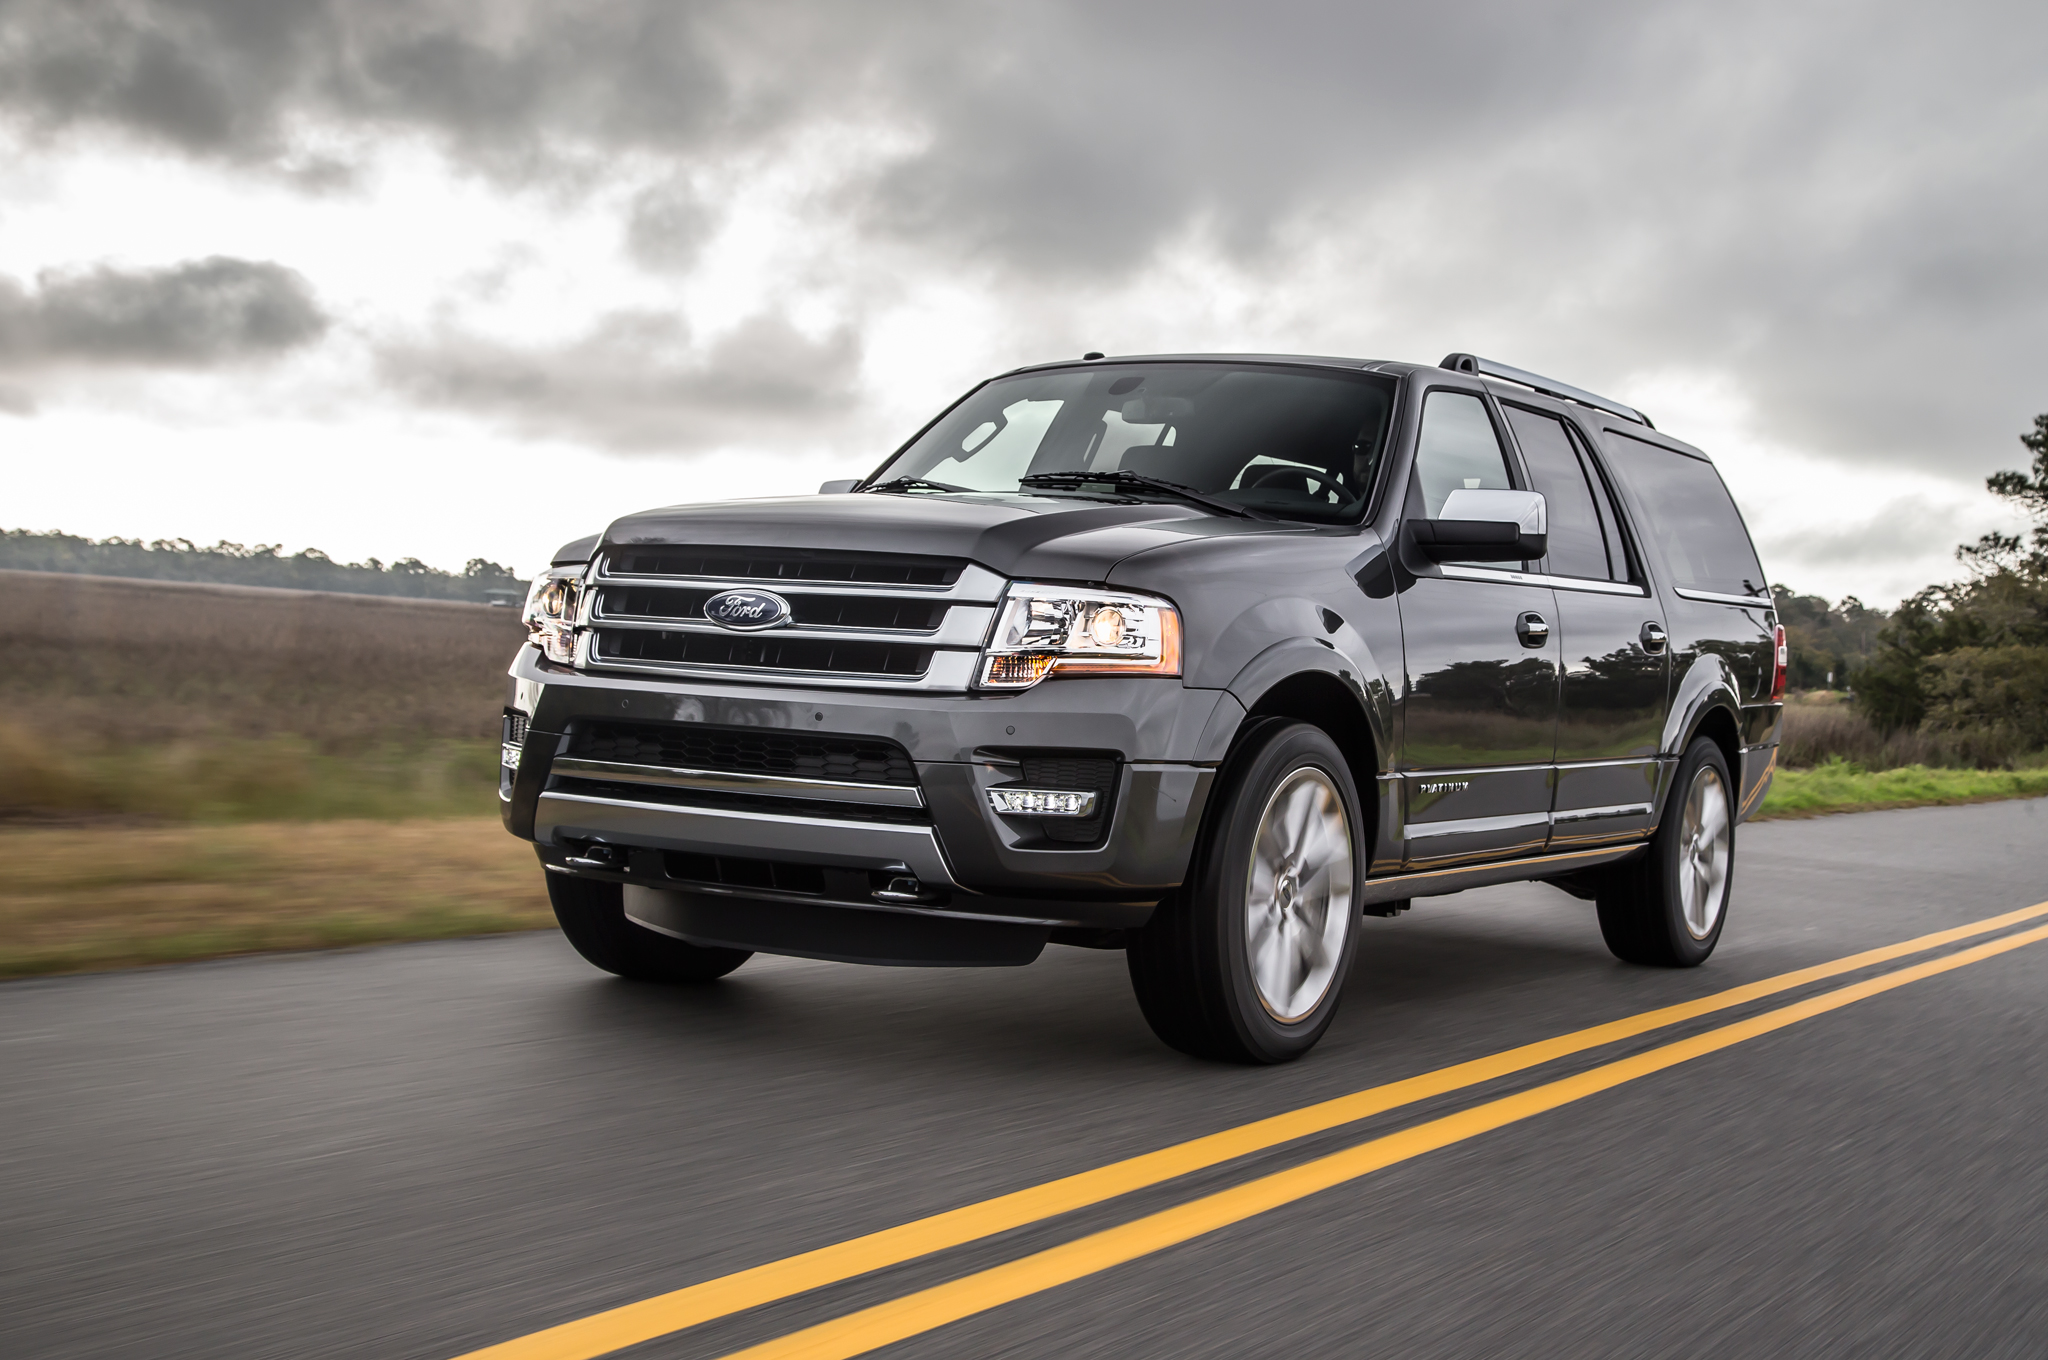 2015 Ford Expedition #4